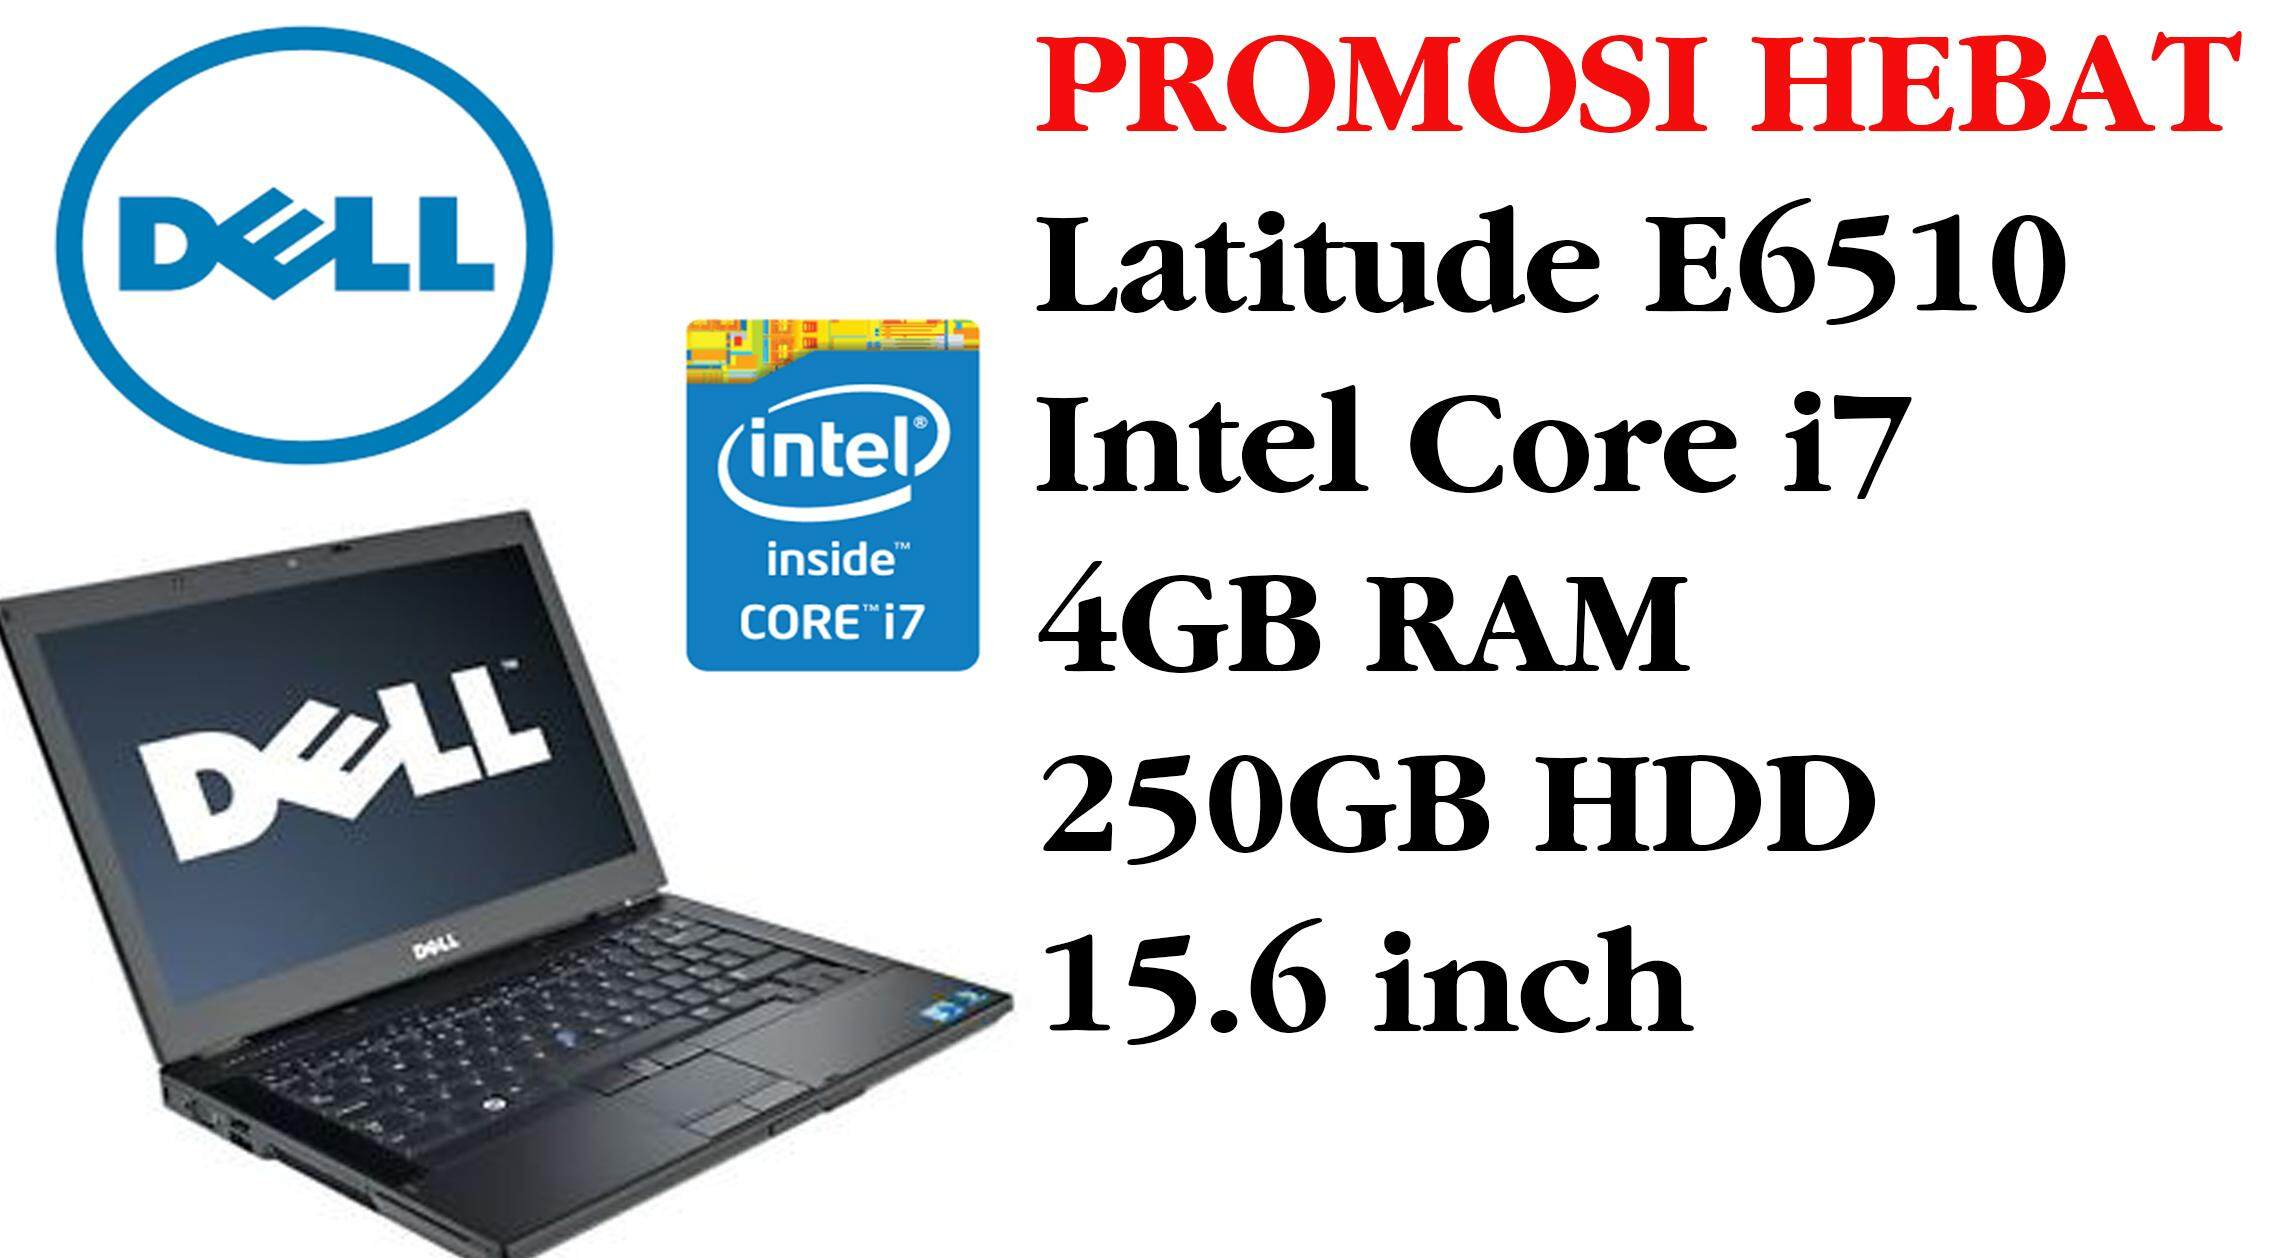 STUDENTS OFFER DELL E6510 intel core i7 4GB RAM 250 GB HDD 15.6 INCH Malaysia